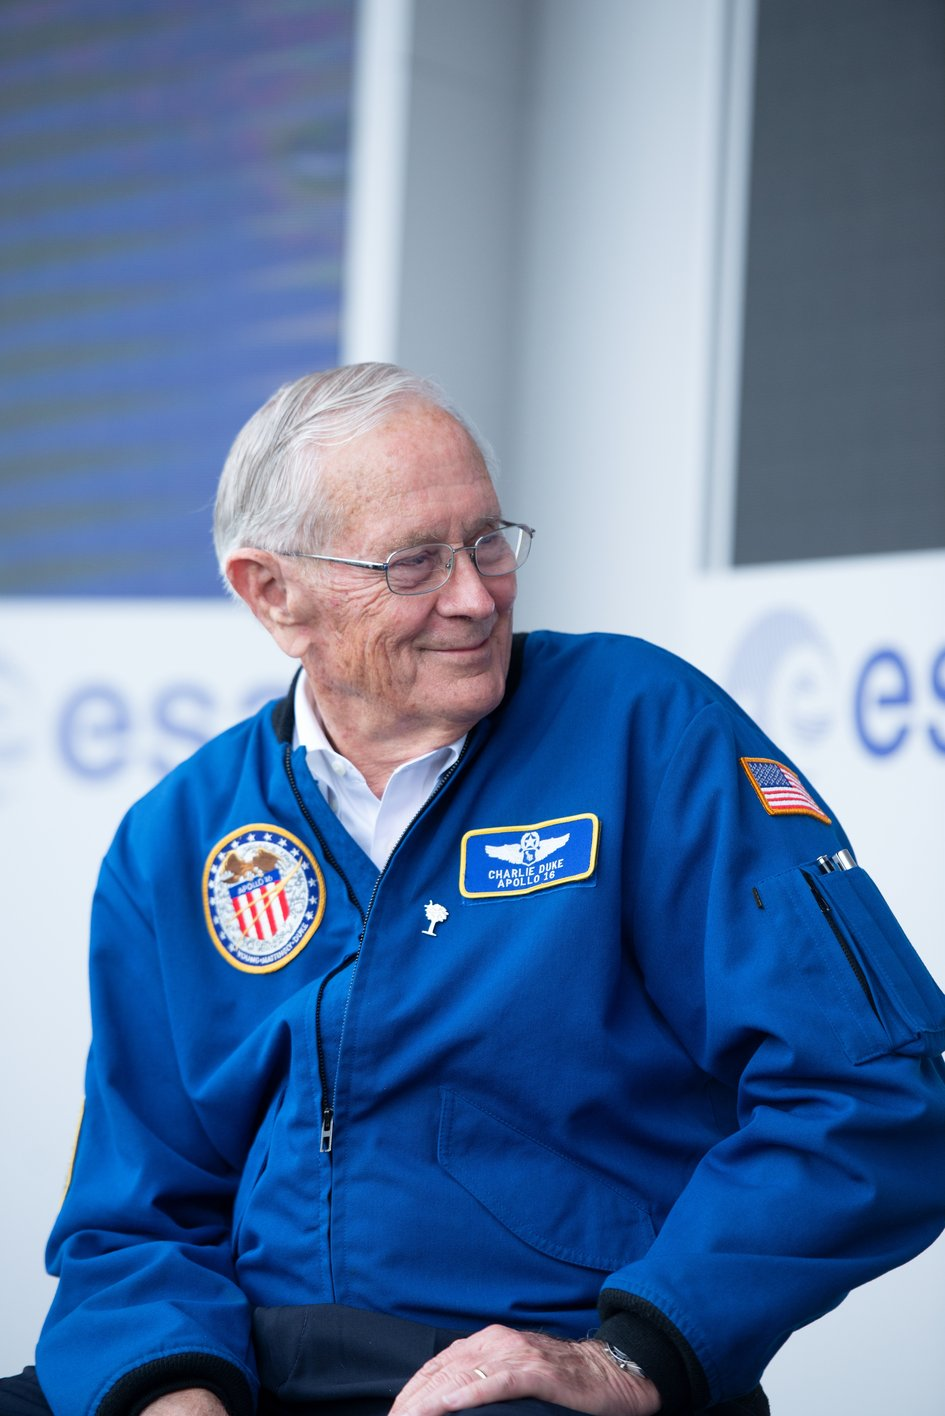 NASA Apollo astronaut Charlie Duke at Le Bourget